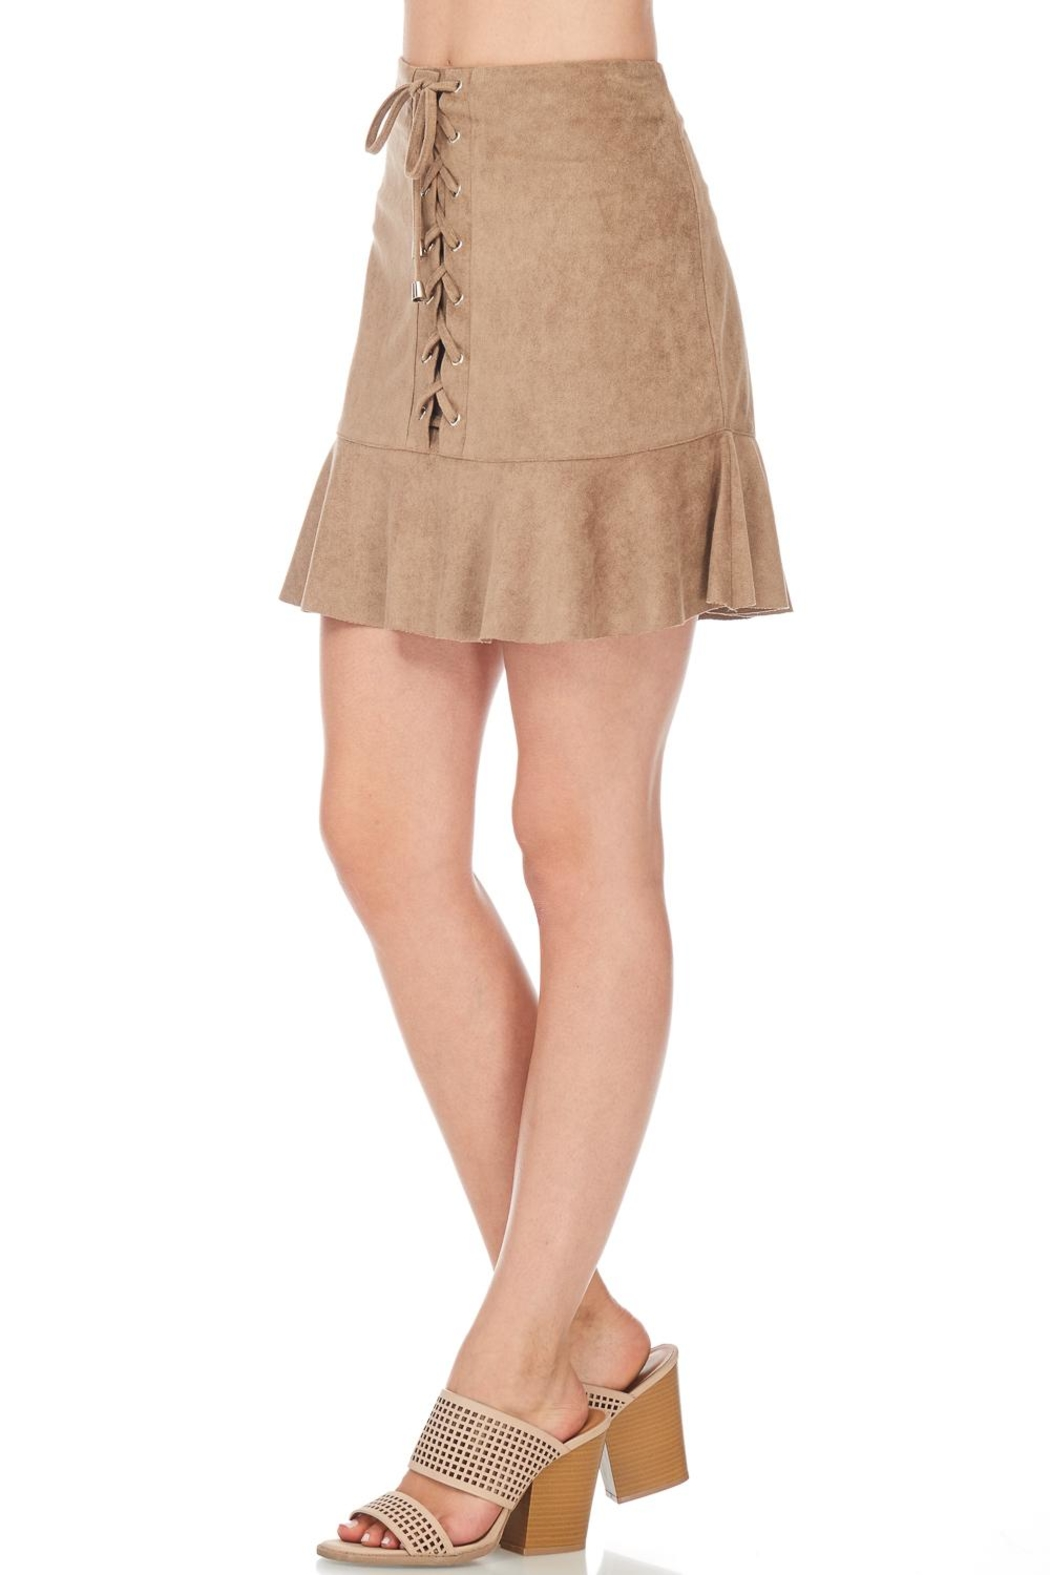 She + Sky Suede Lace Up Skirt - Side Cropped Image